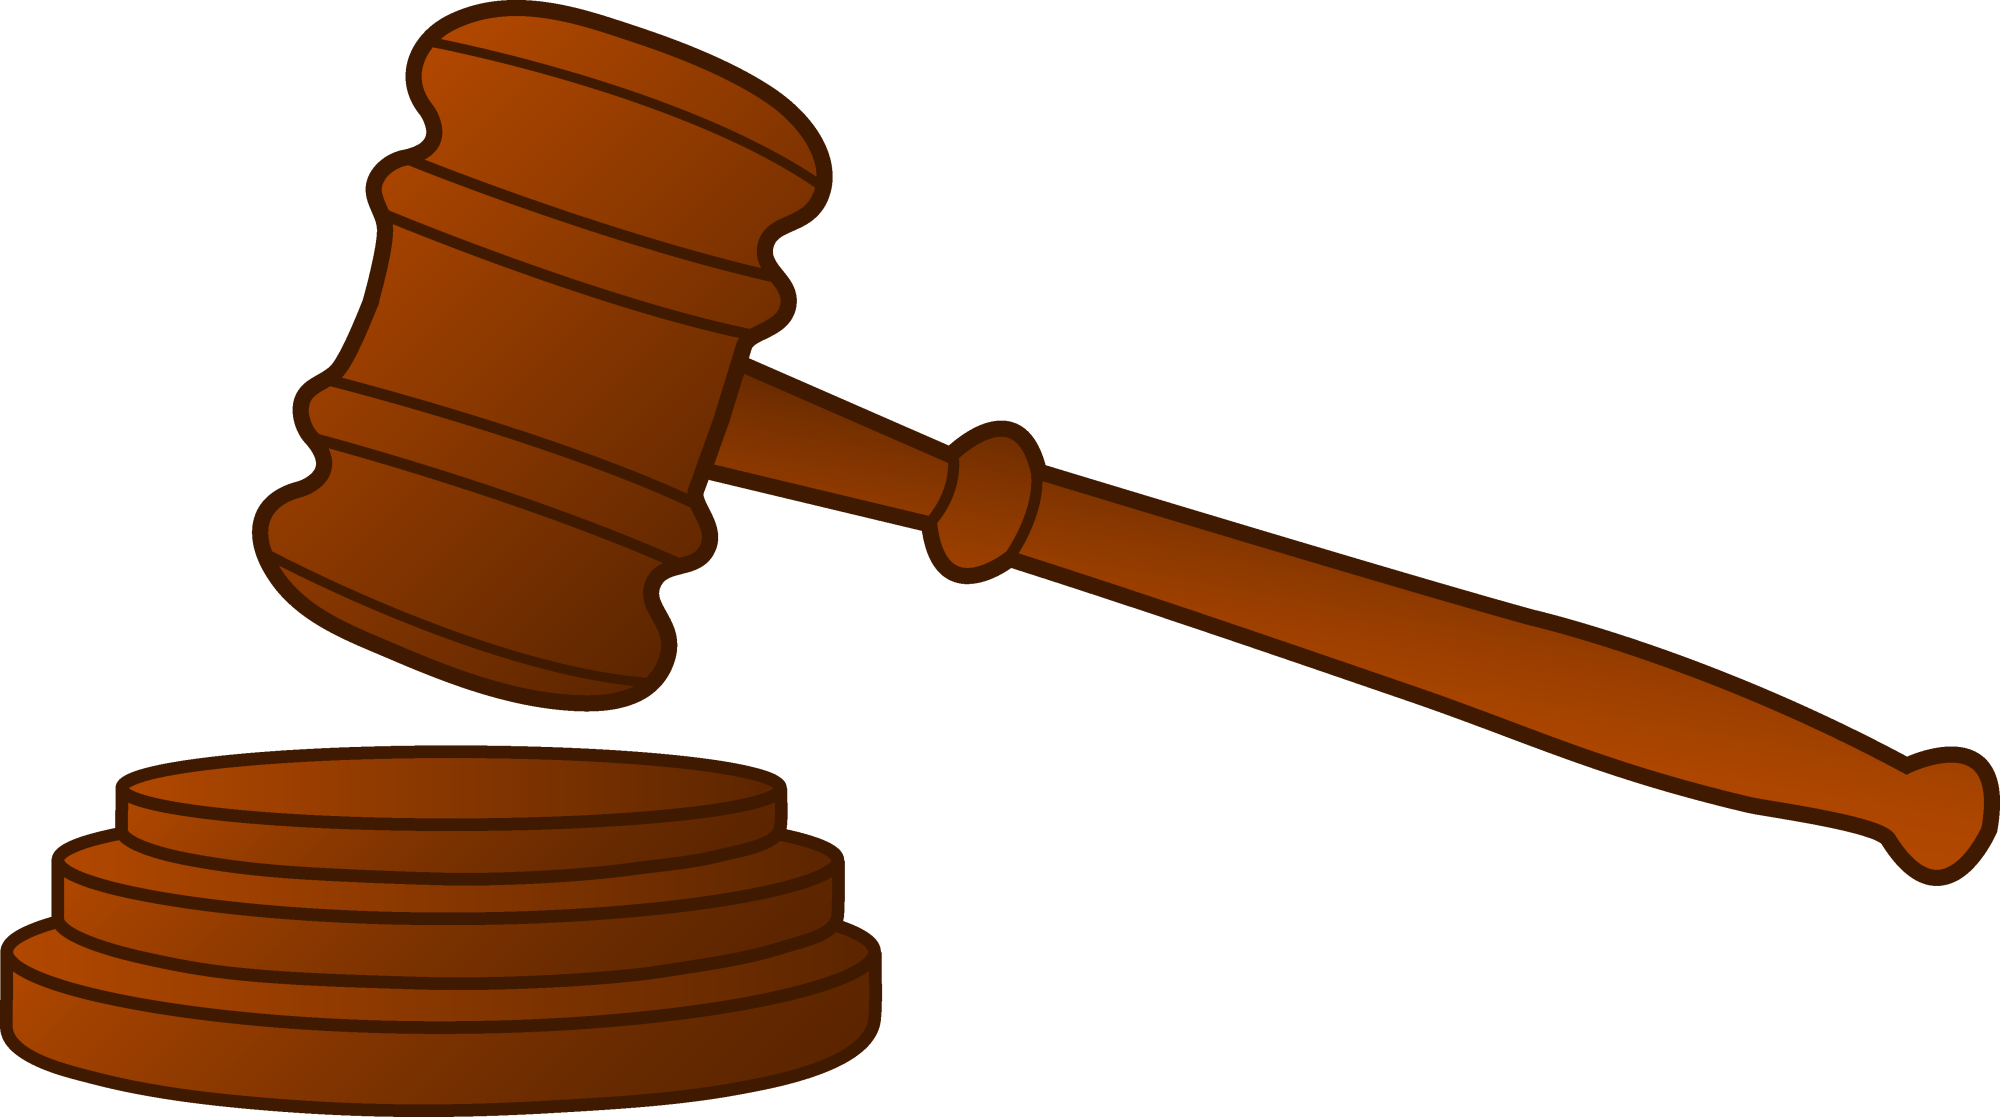 Gavel clipart student government, Picture #1196987 gavel.